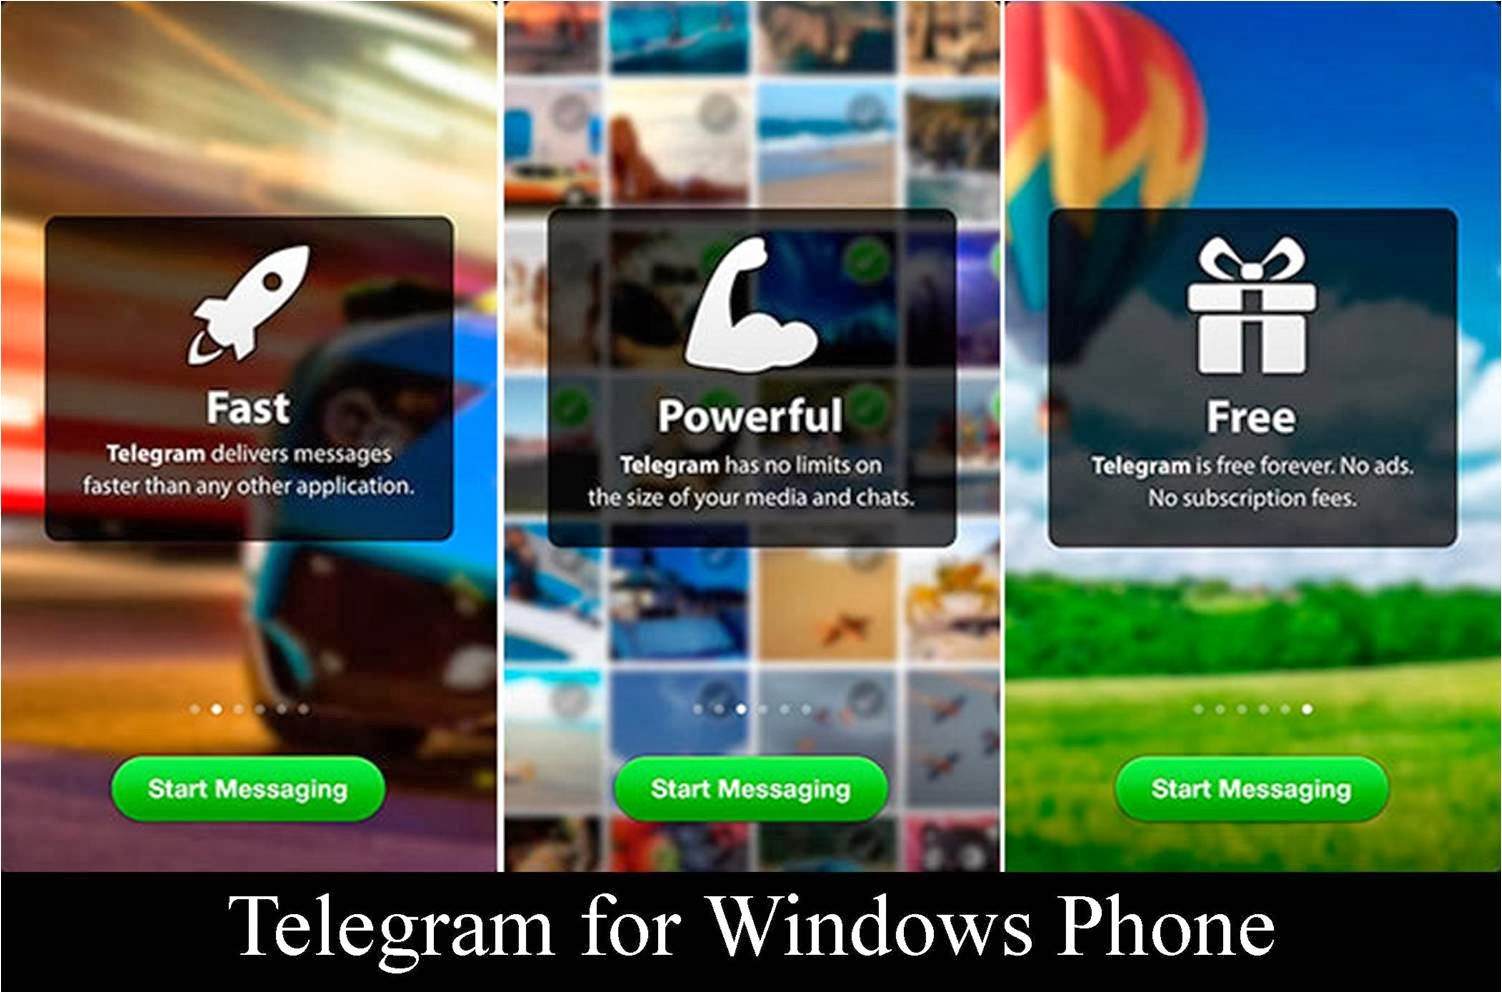 Telegram app on Windows phone